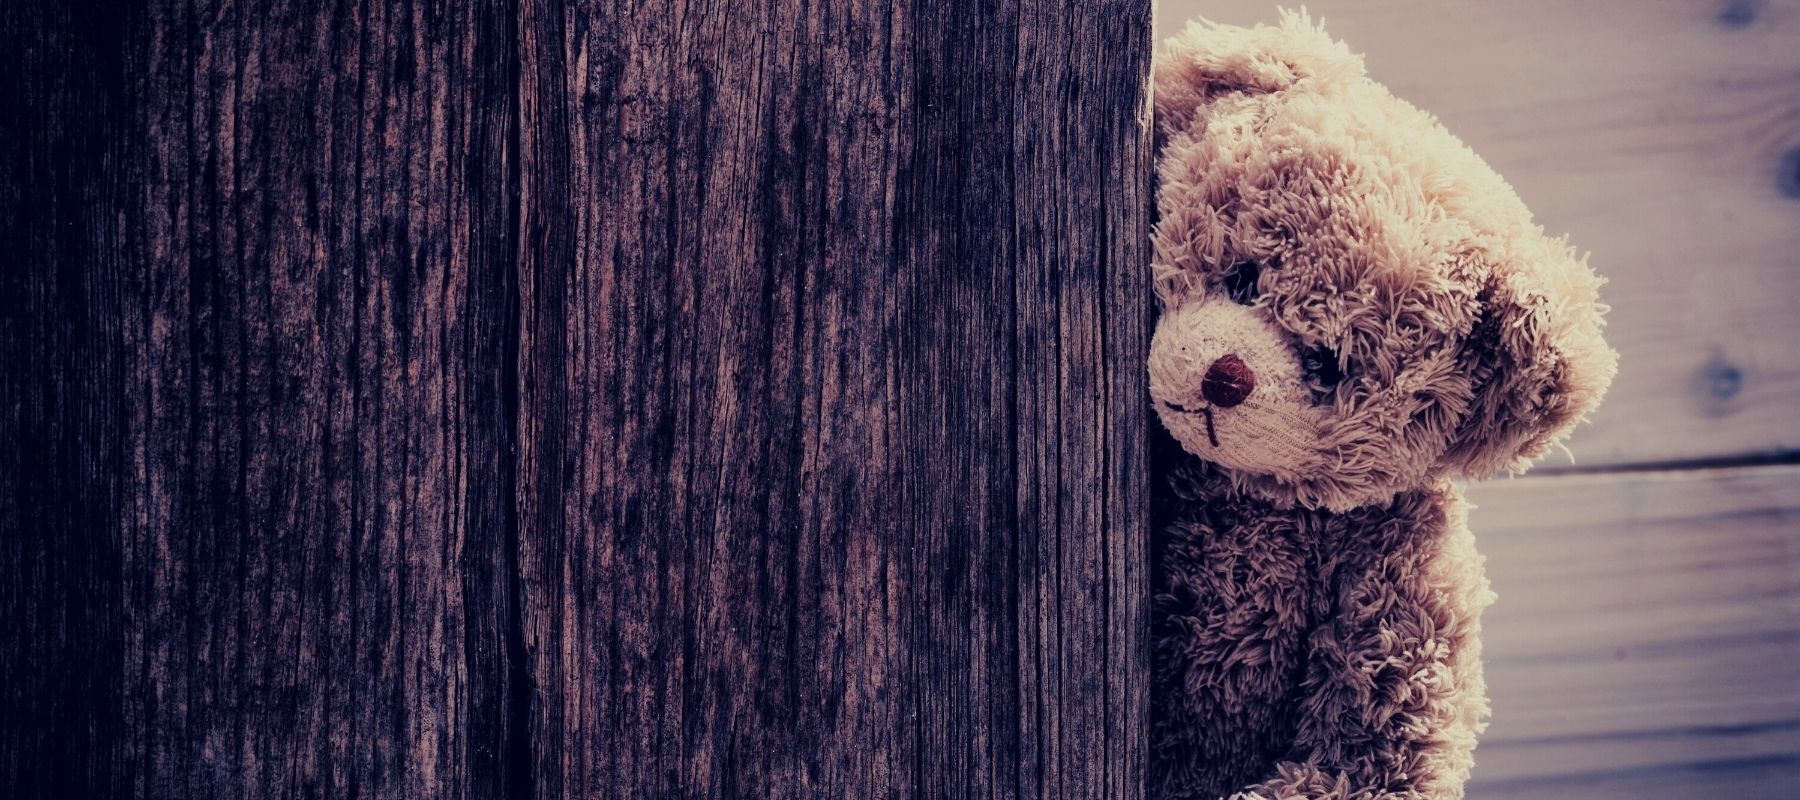 Teddy Bear Standing Behind a Wooden Fence